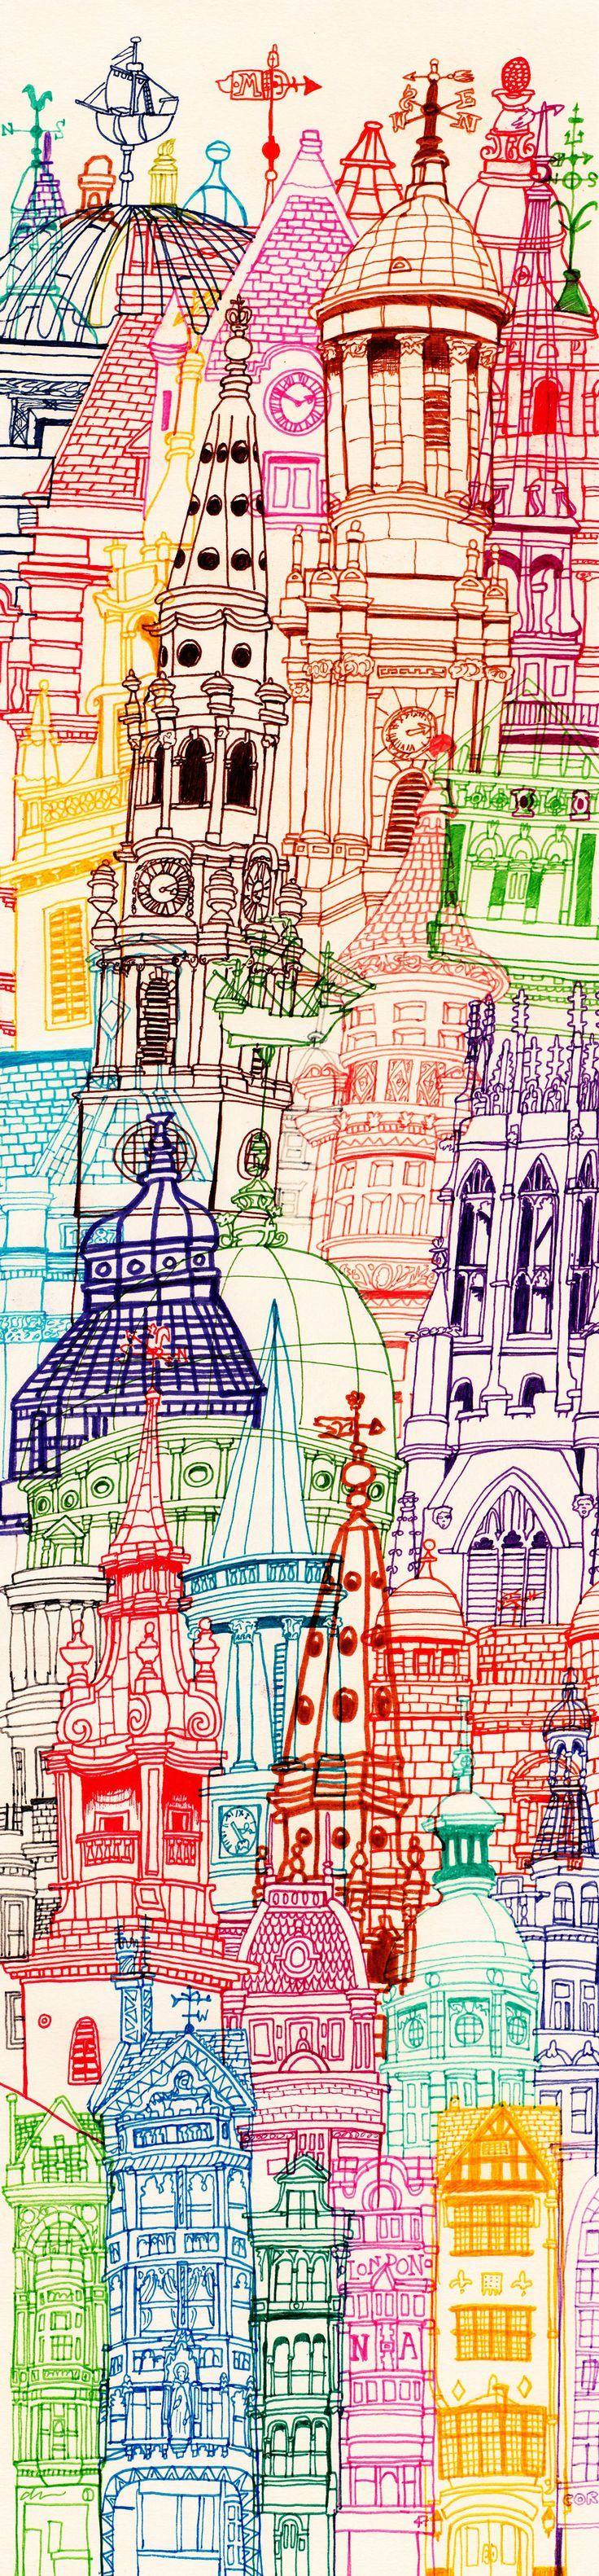 Illustrator Cheism - 'Towers of London'